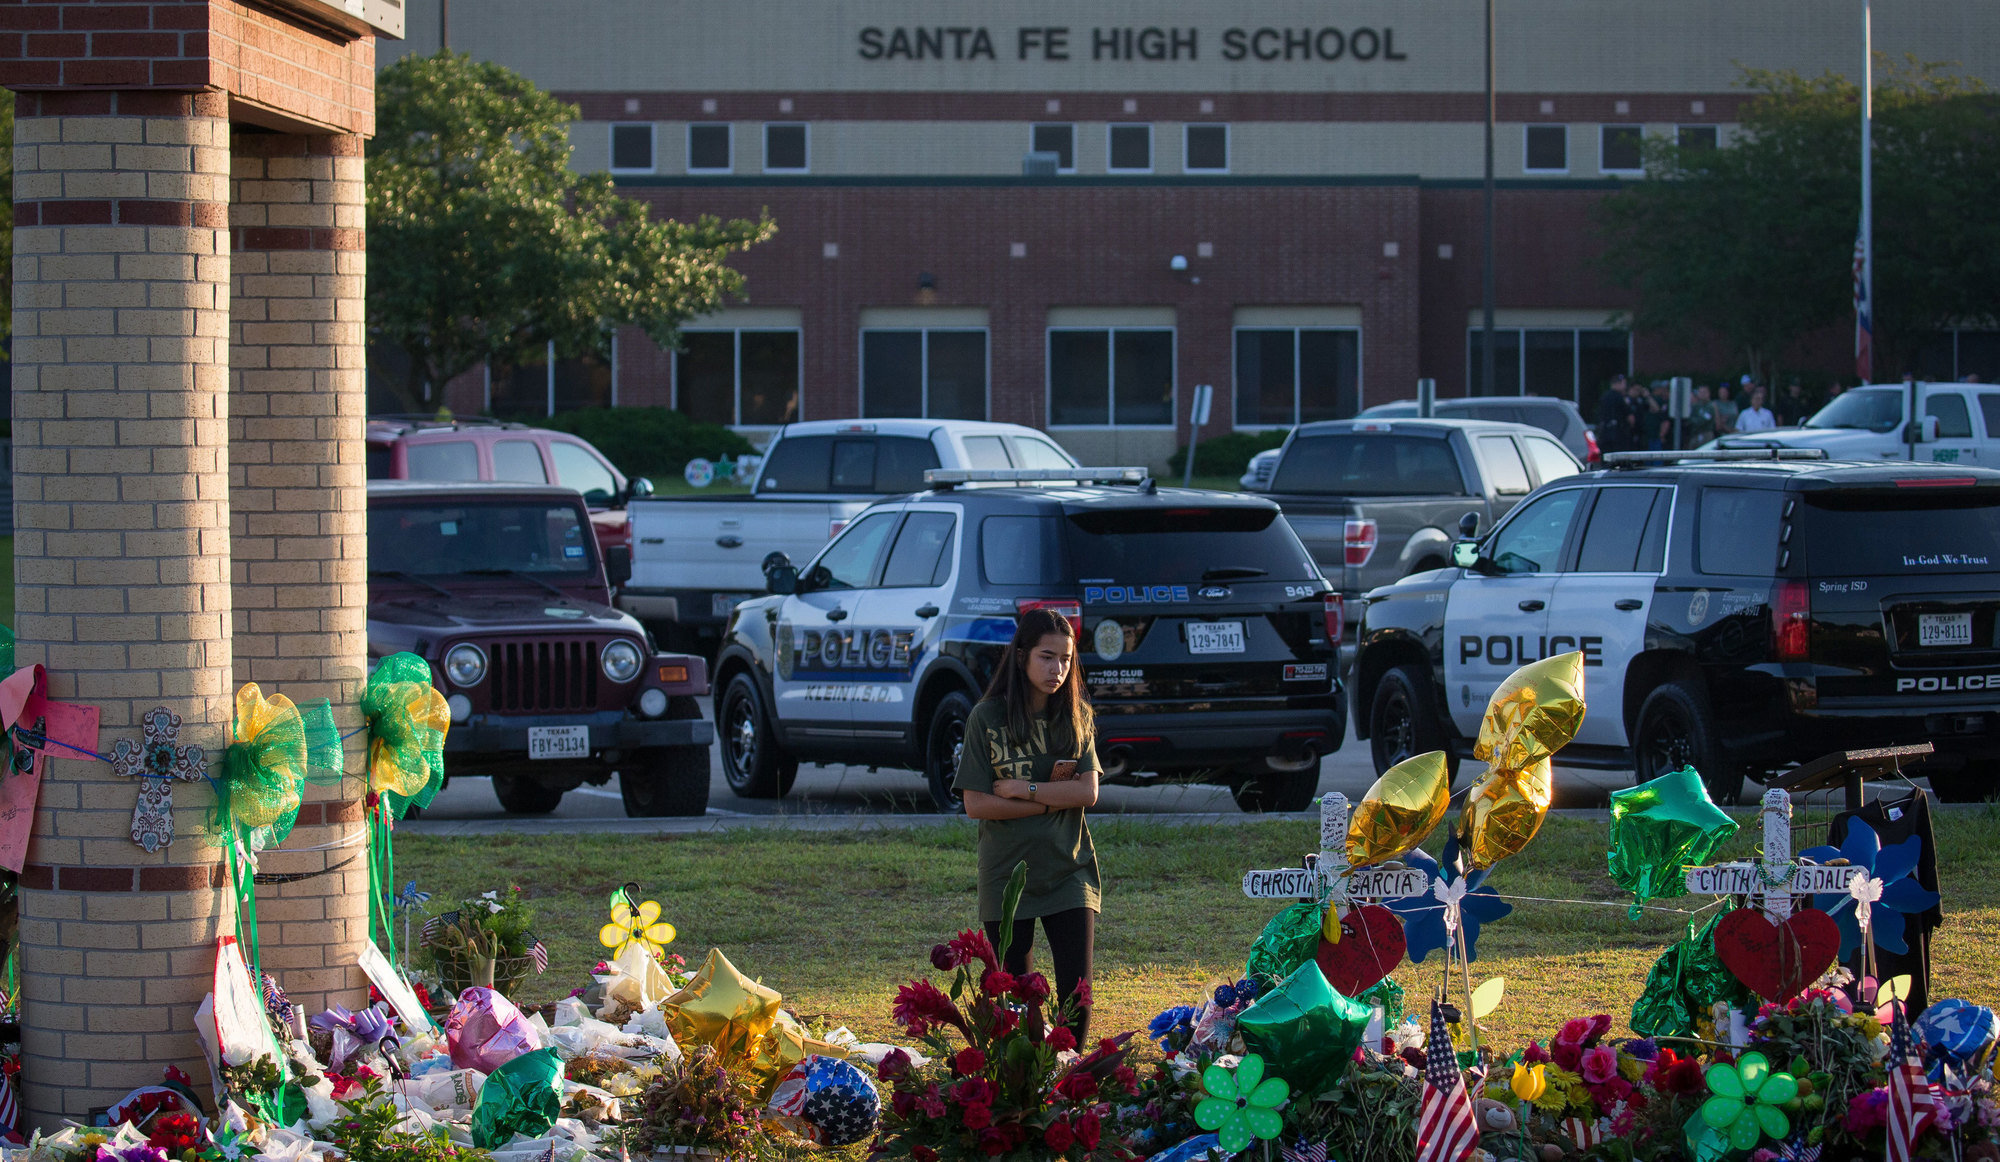 People left flowers at a memorial to shooting victims outside Santa Fe High School, in Santa Fe, Texas, in May.